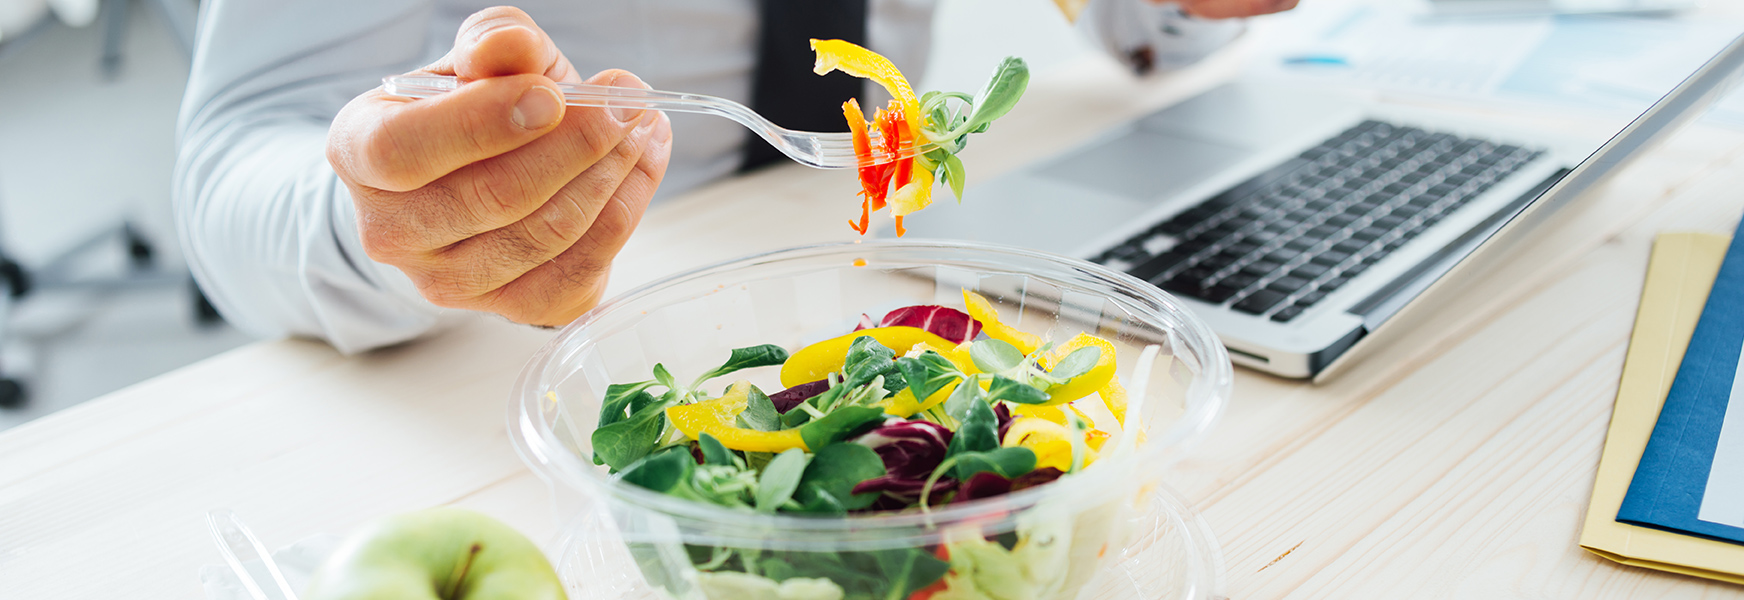 Employee eating healthy salad at desk